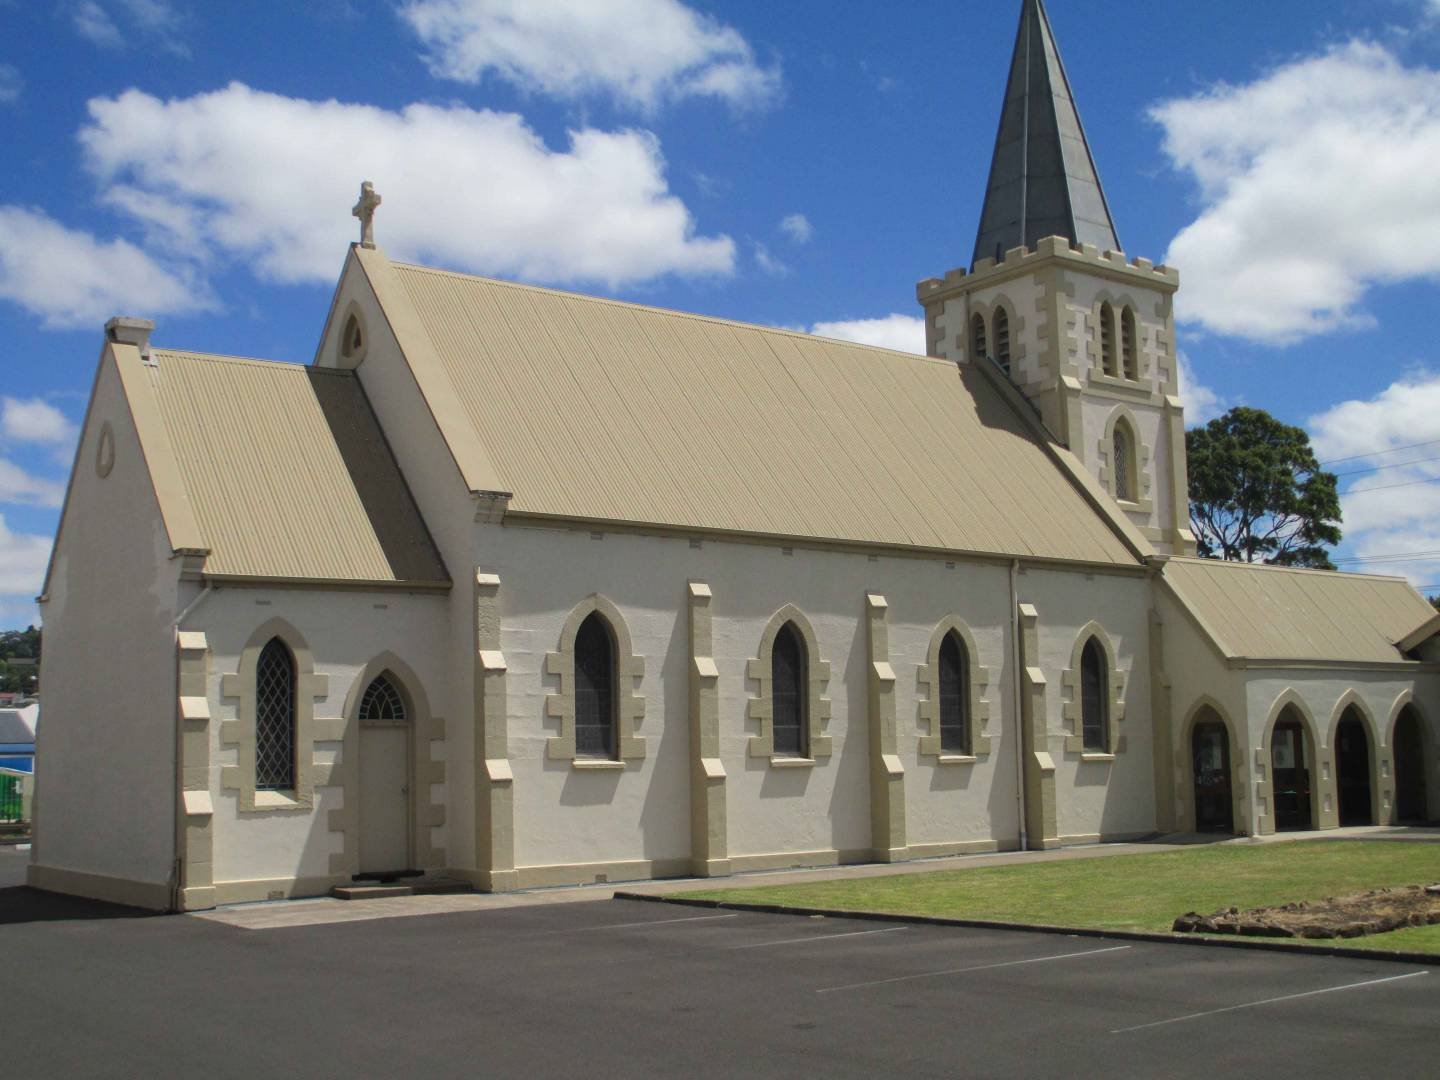 St Martin's Lutheran Church